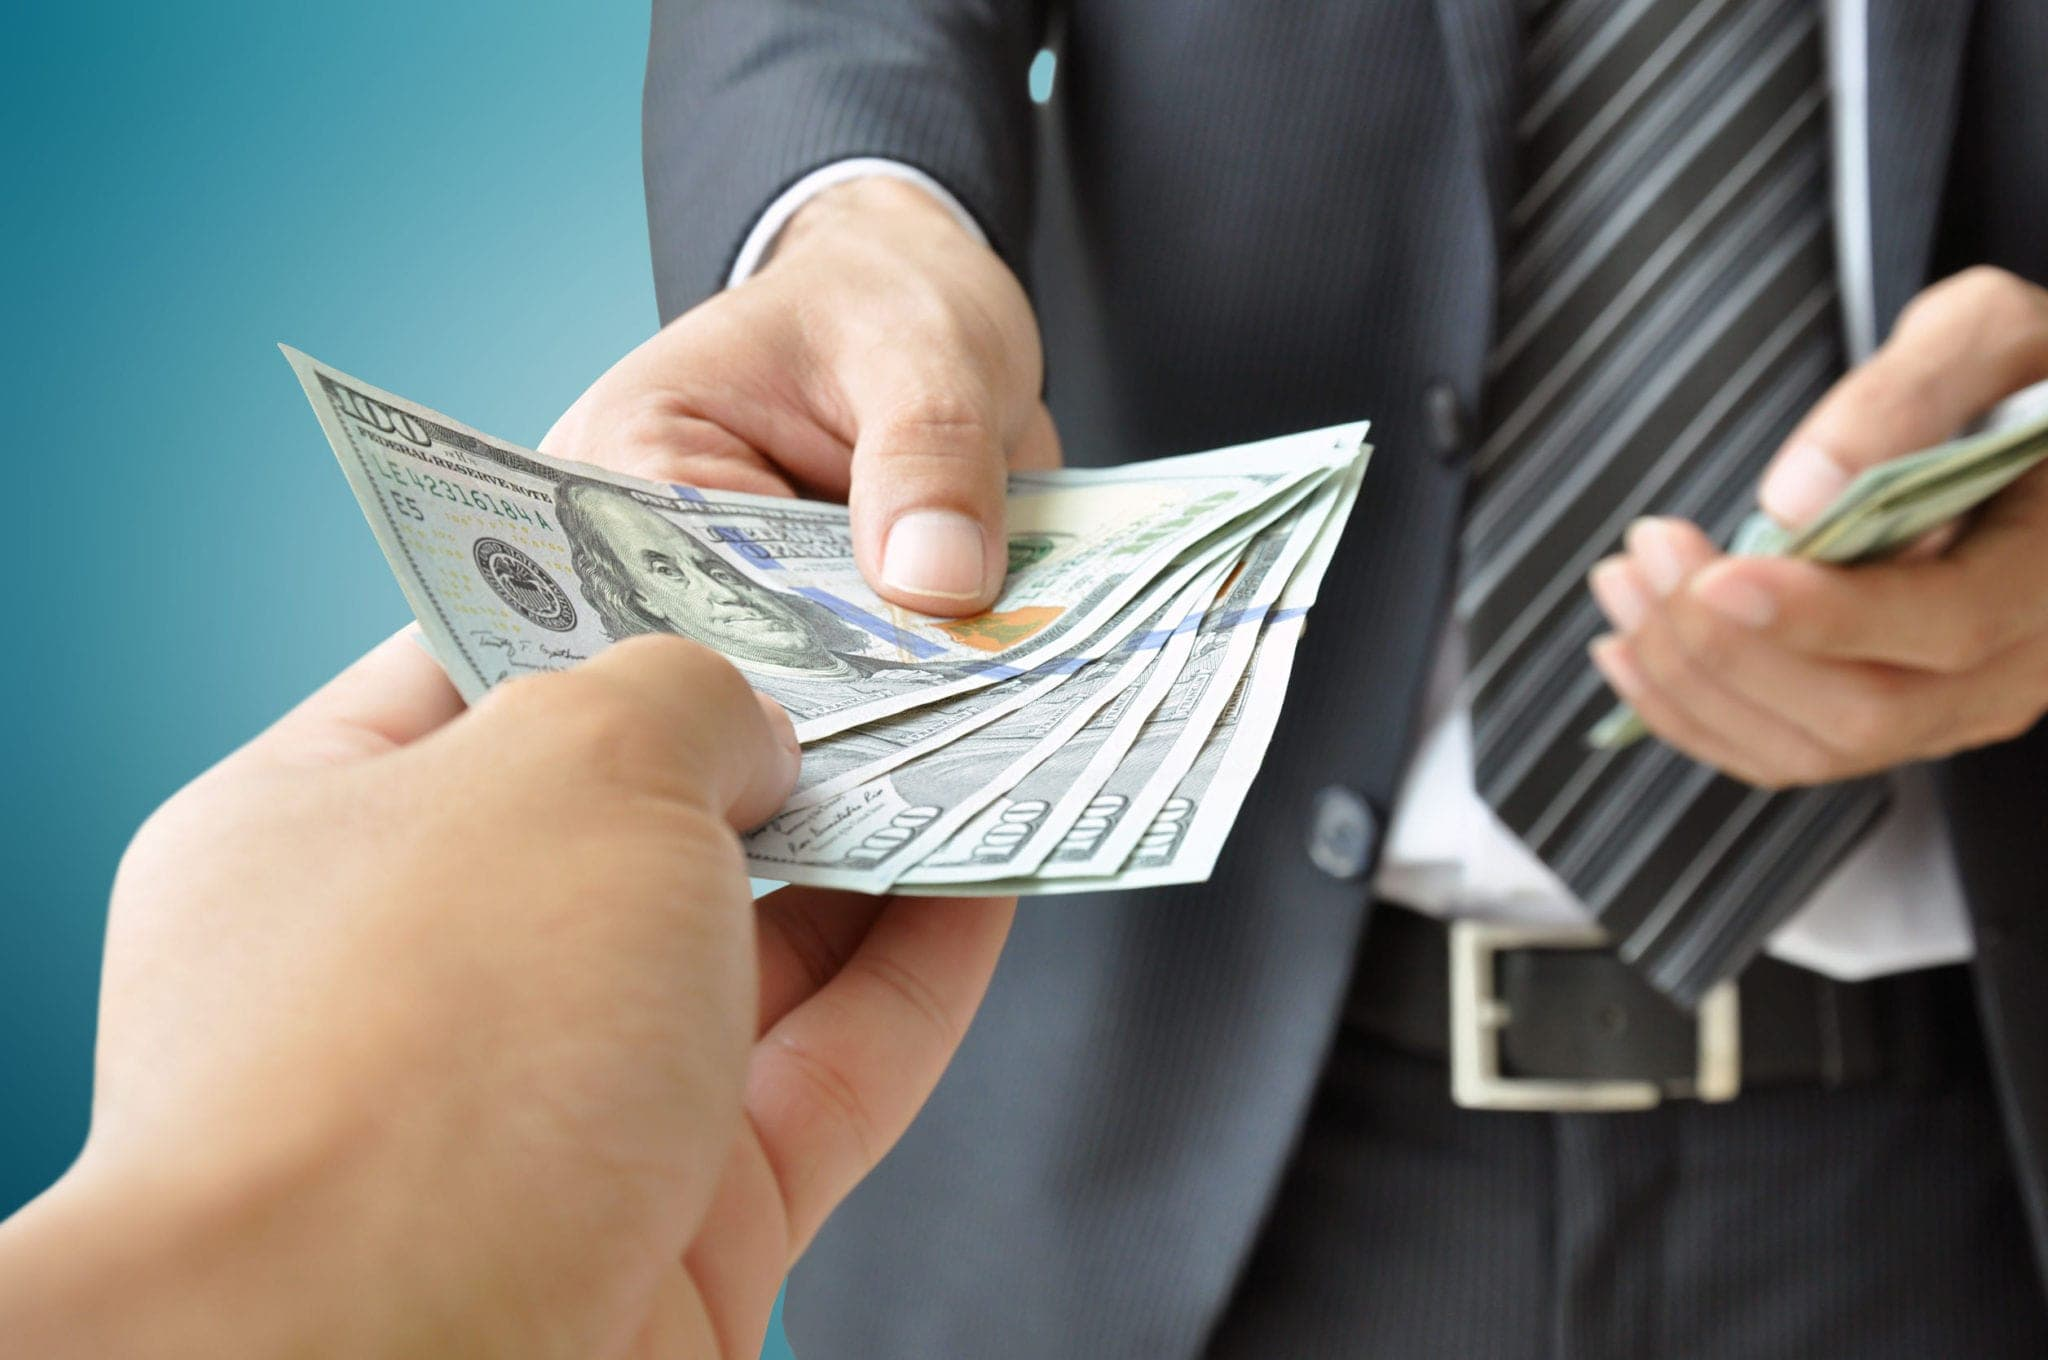 Borrow Cash Advance Online: What You Should Pay Attention Before